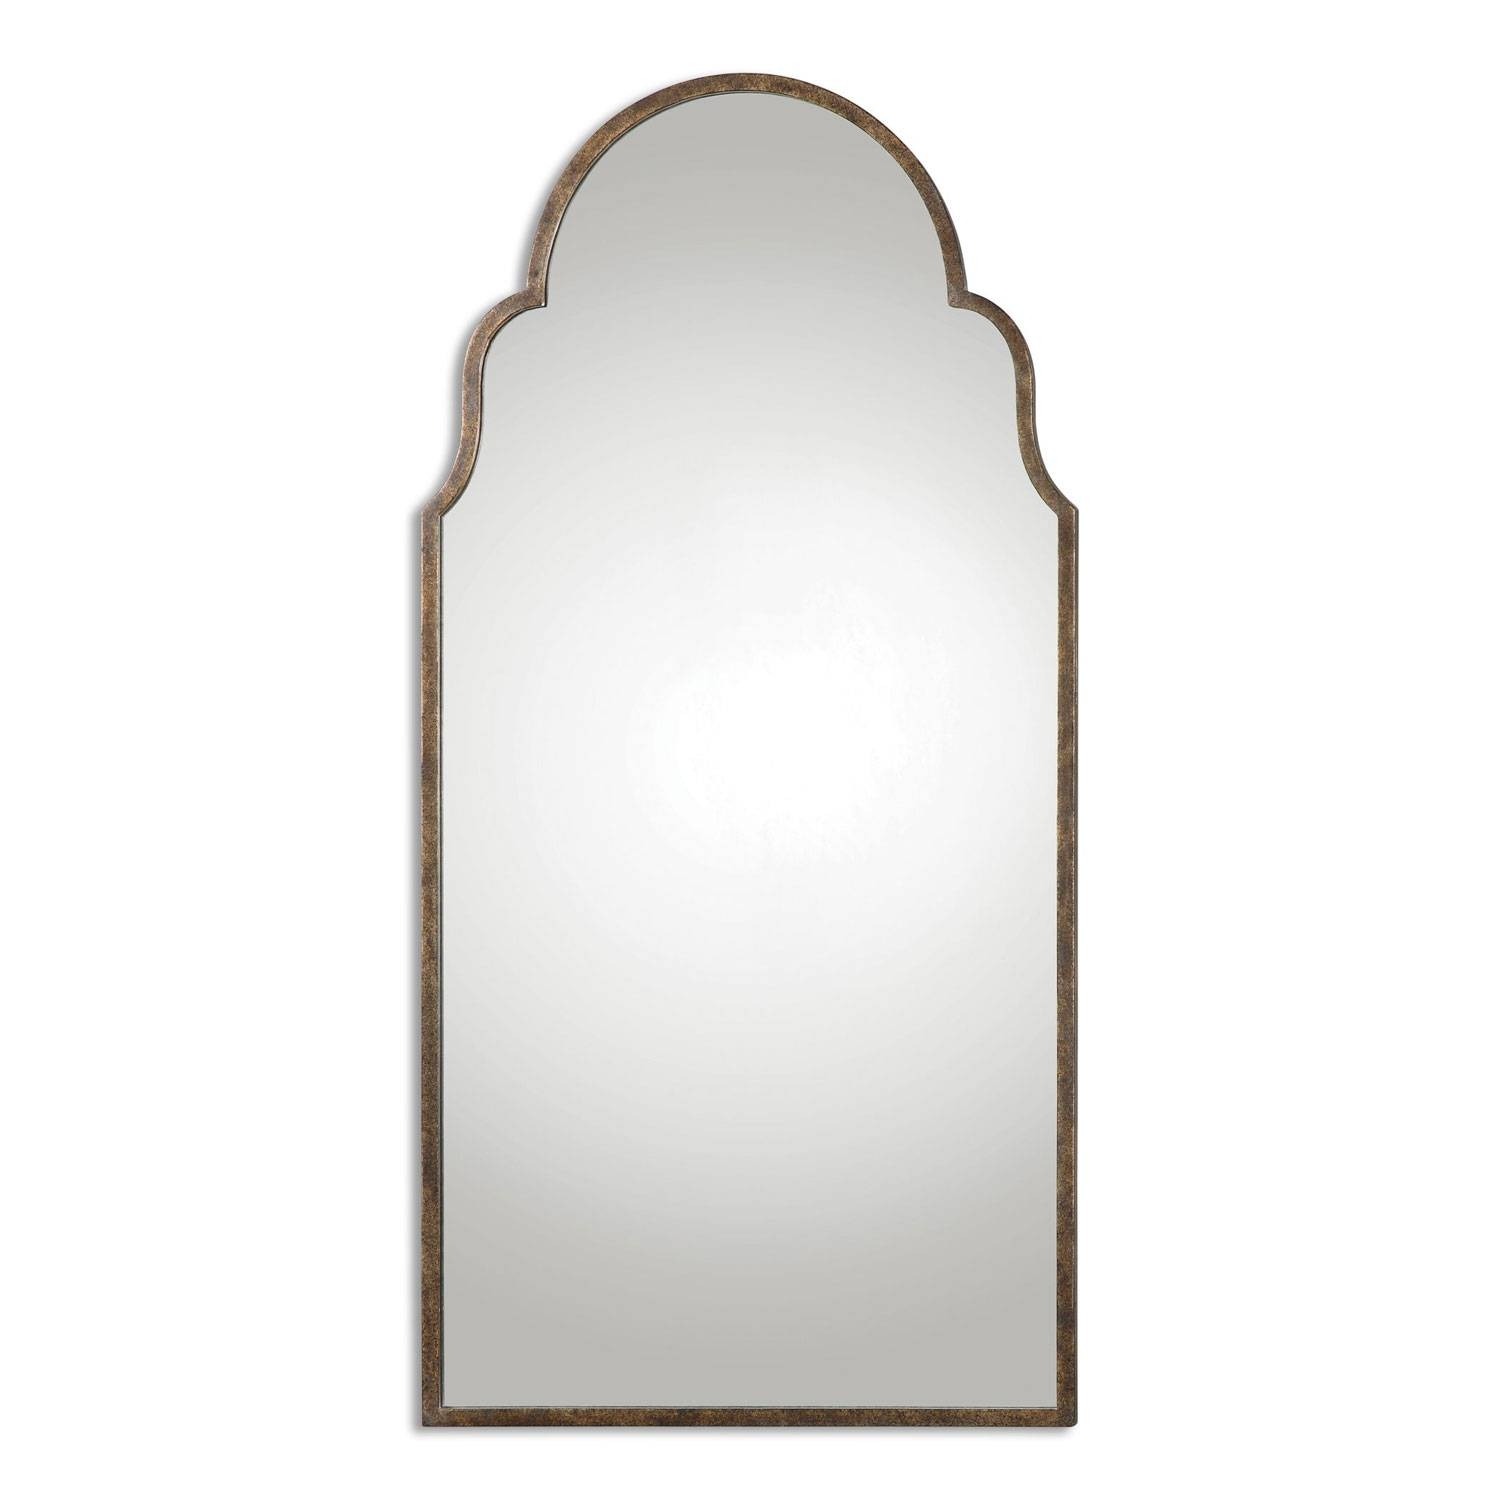 Arched Crowned Mirrors | Bellacor throughout Arched Wall Mirrors (Image 1 of 15)